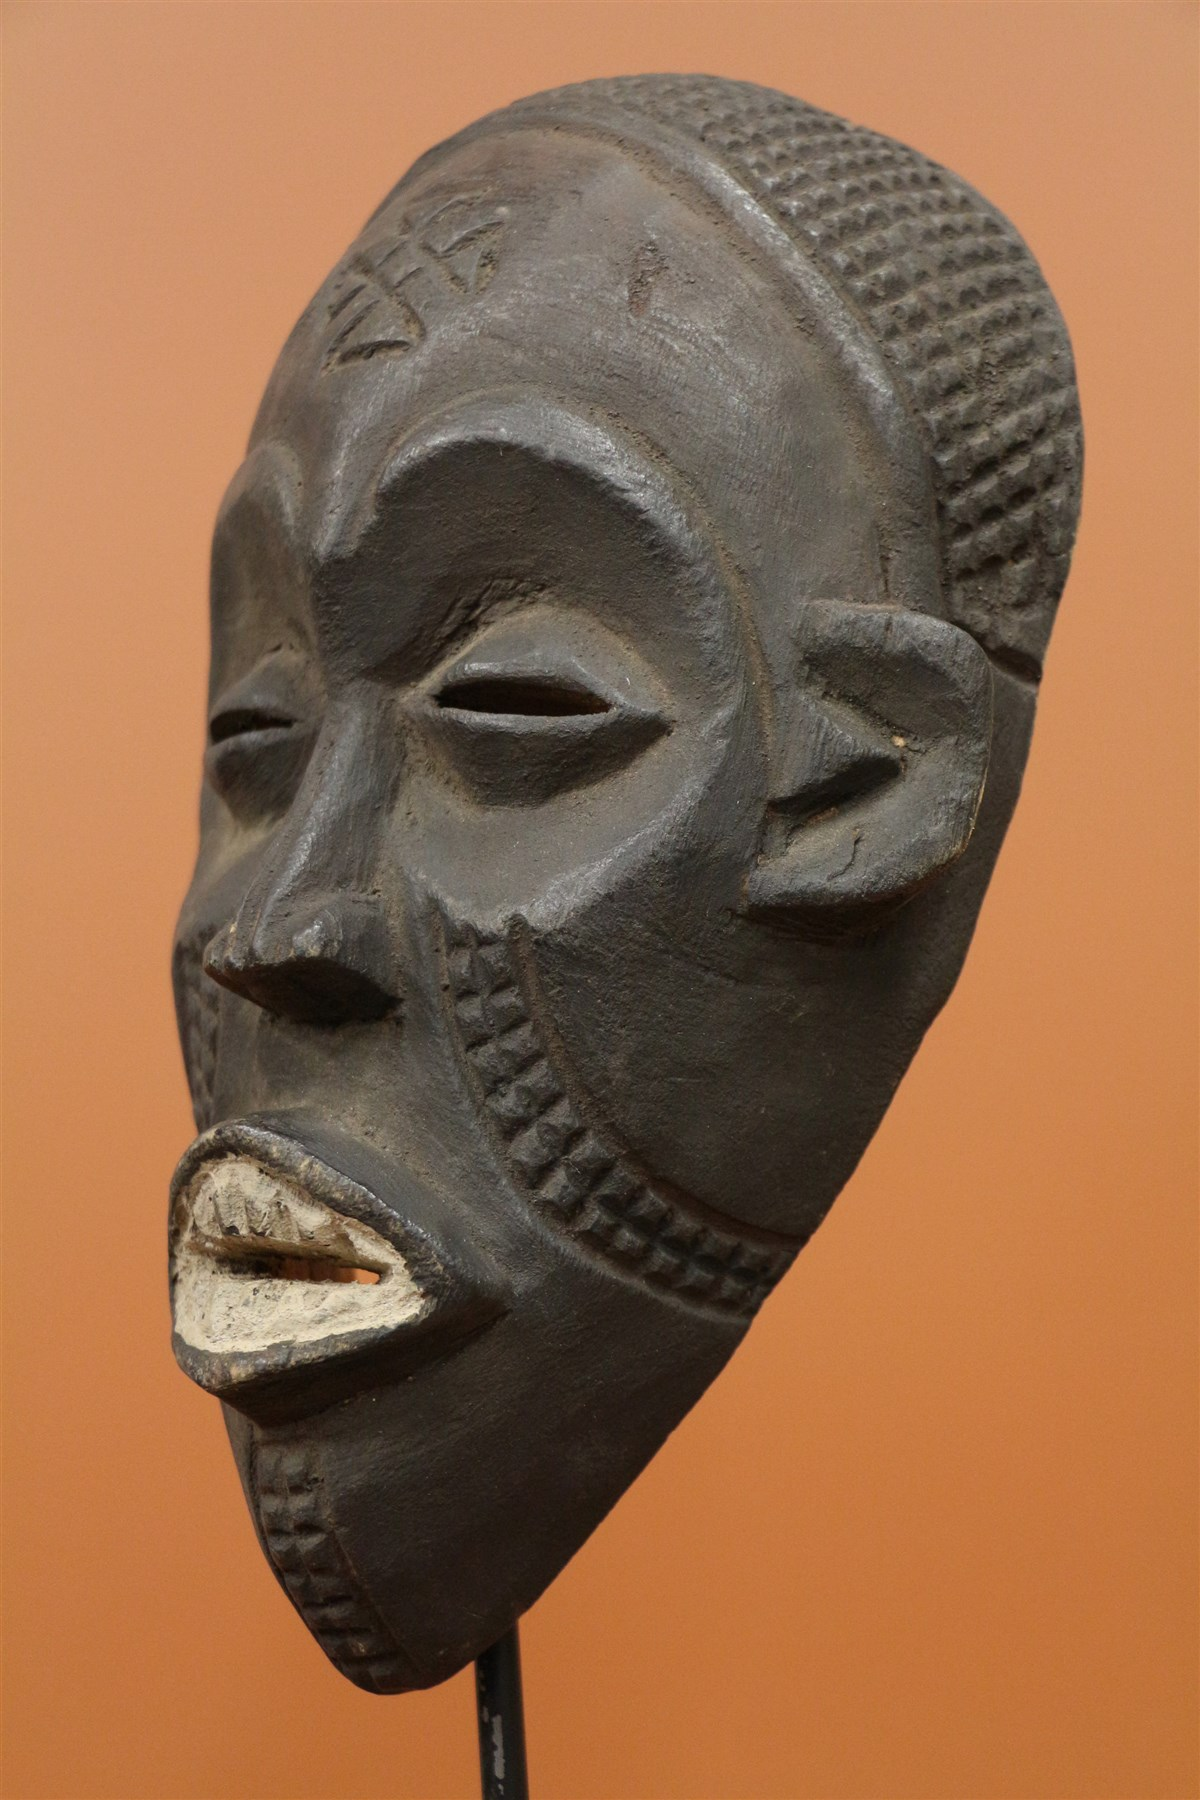 Masque Chokwe passeport - Déco africaine - Art africain traditionnel